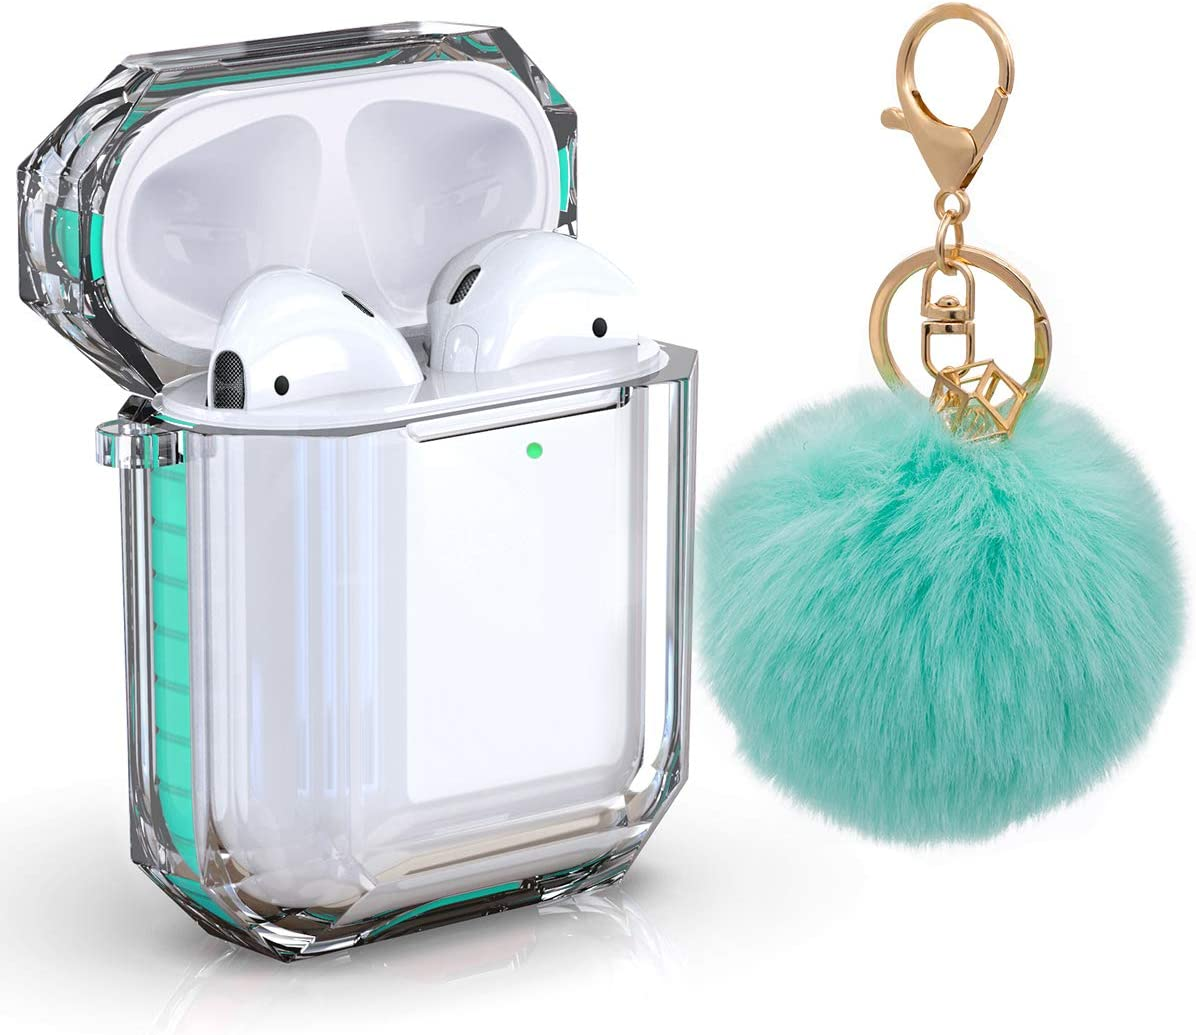 AirPods Case Cover, Zora Shockproof Protective Soft TPU Clear Apple Air Pods 1&2 Cover Case (Front LED Visible) Headphone Case with Cute Fur Ball Anti-Lost Keychain for Girls (Airpods 2, Mint Green)